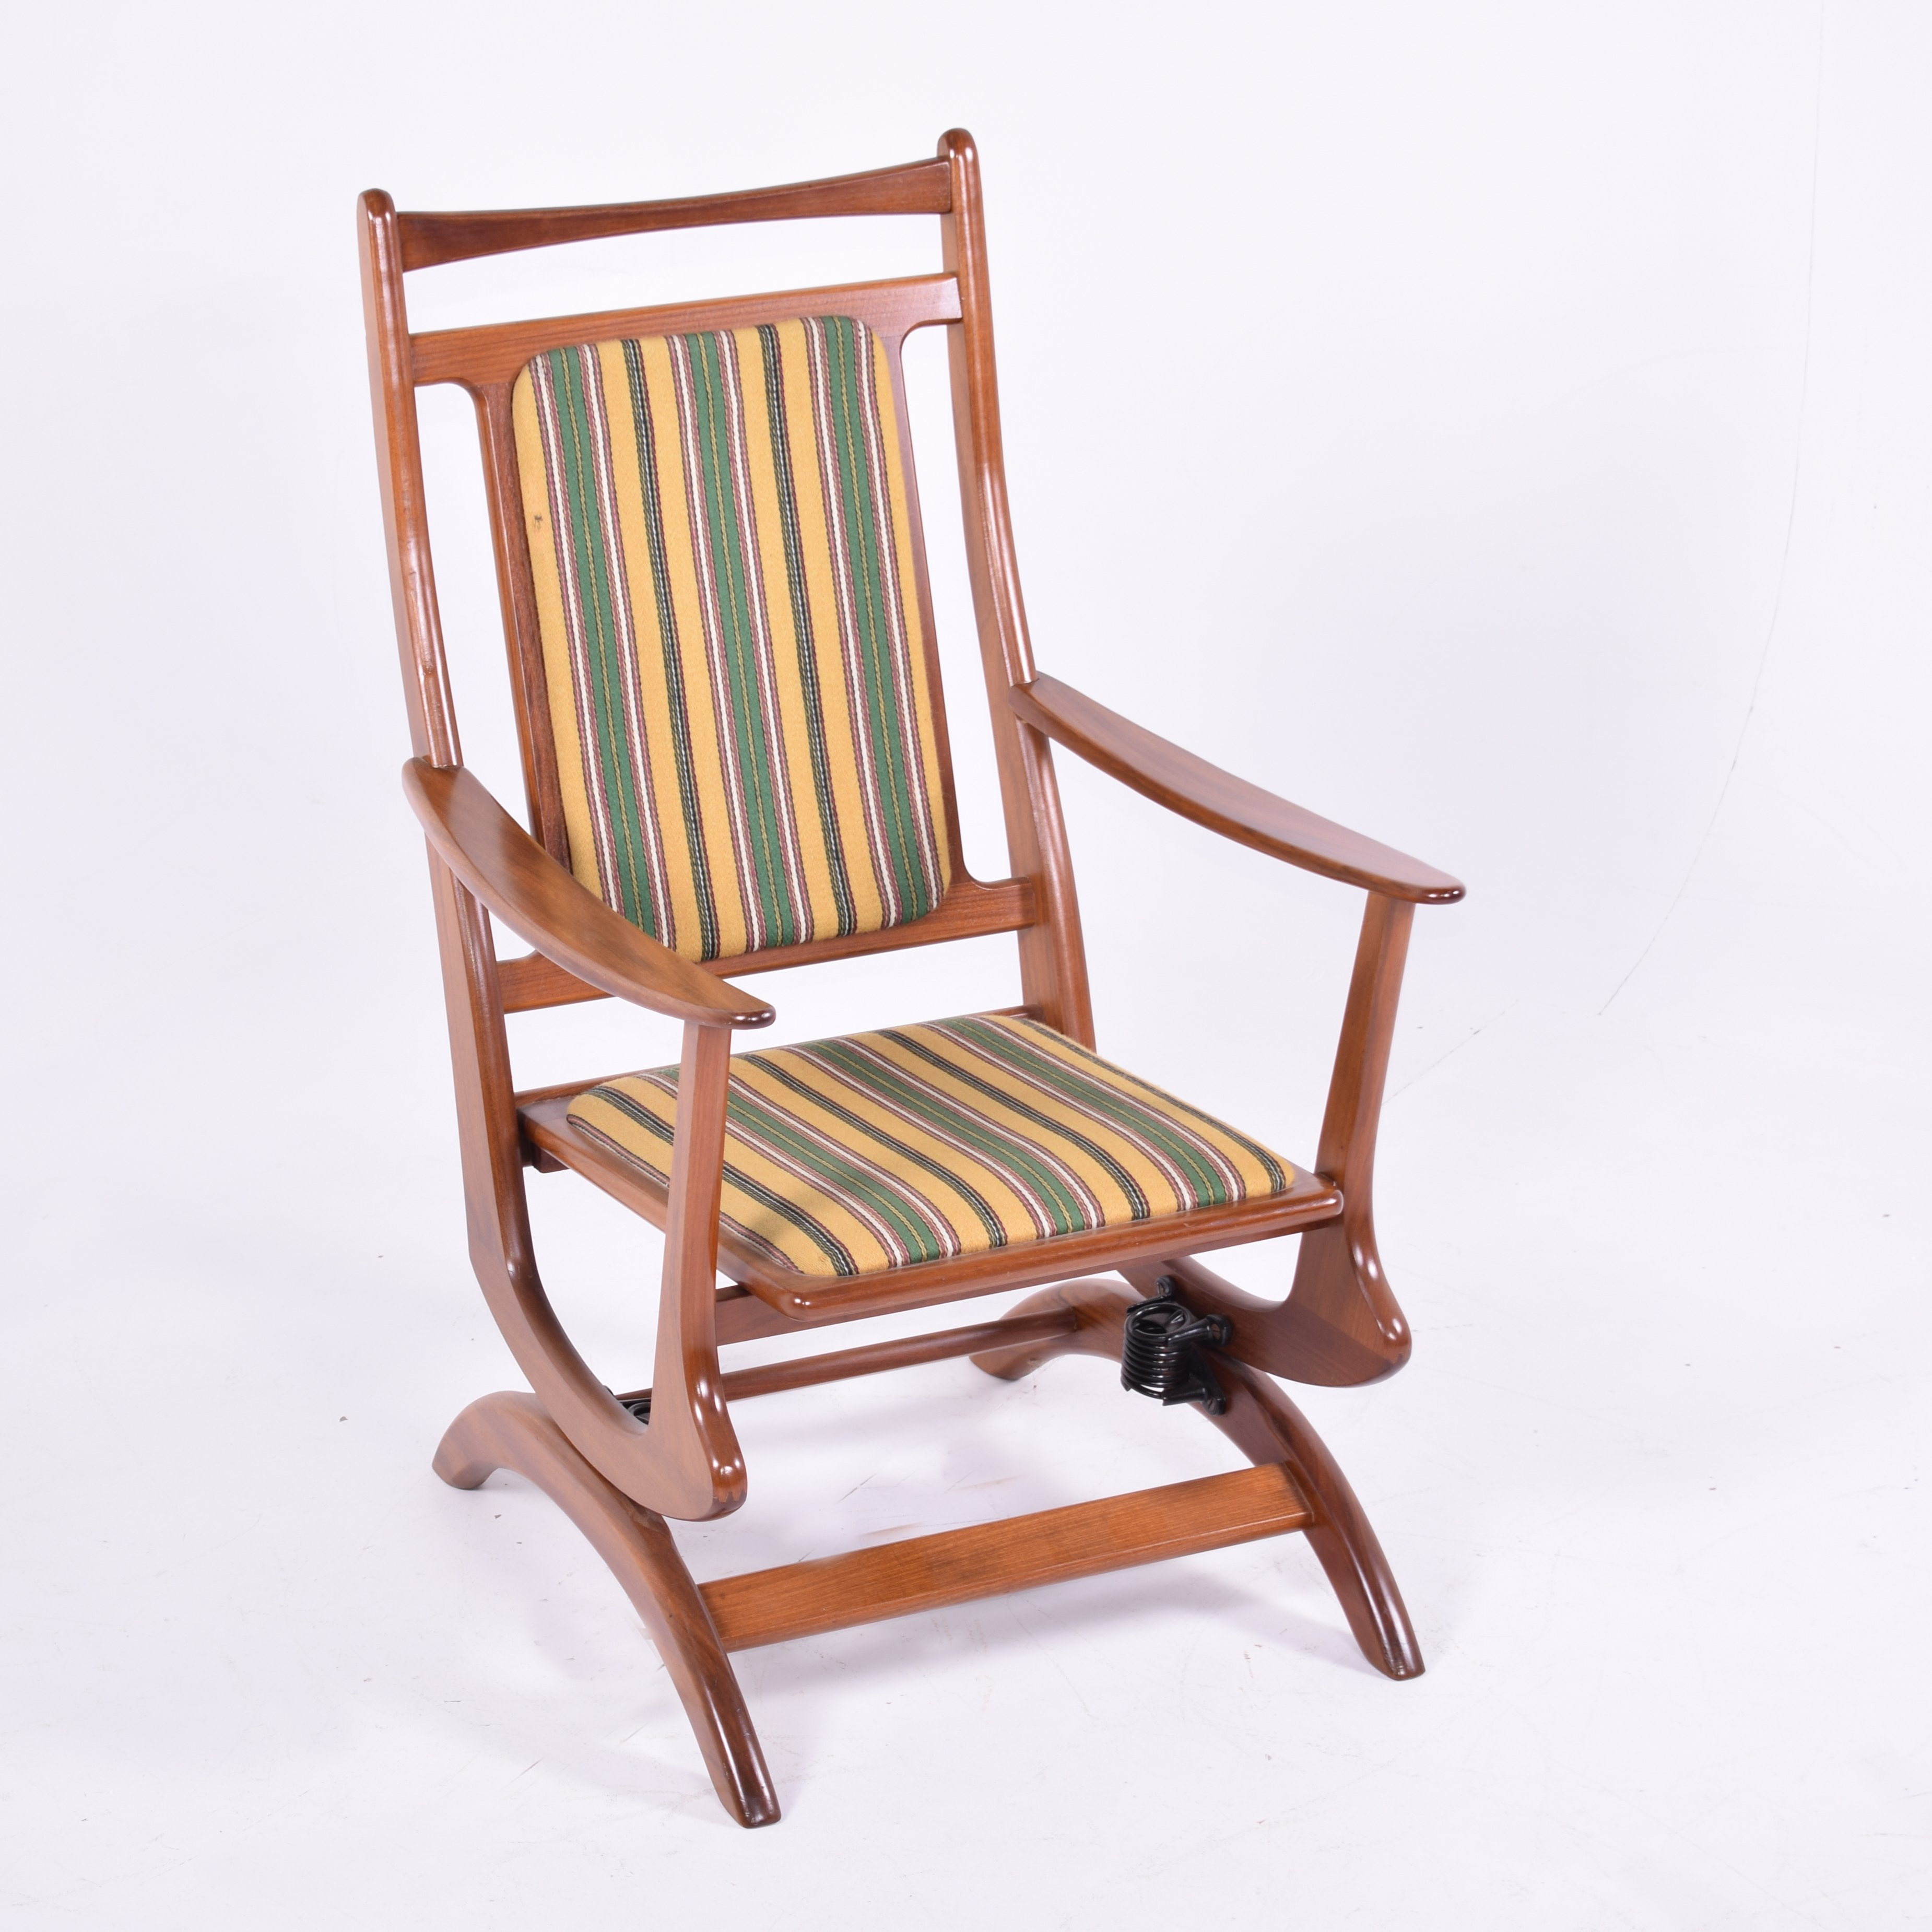 Marvelous Danish Teak Rocking Chair With Original Fabric Gmtry Best Dining Table And Chair Ideas Images Gmtryco